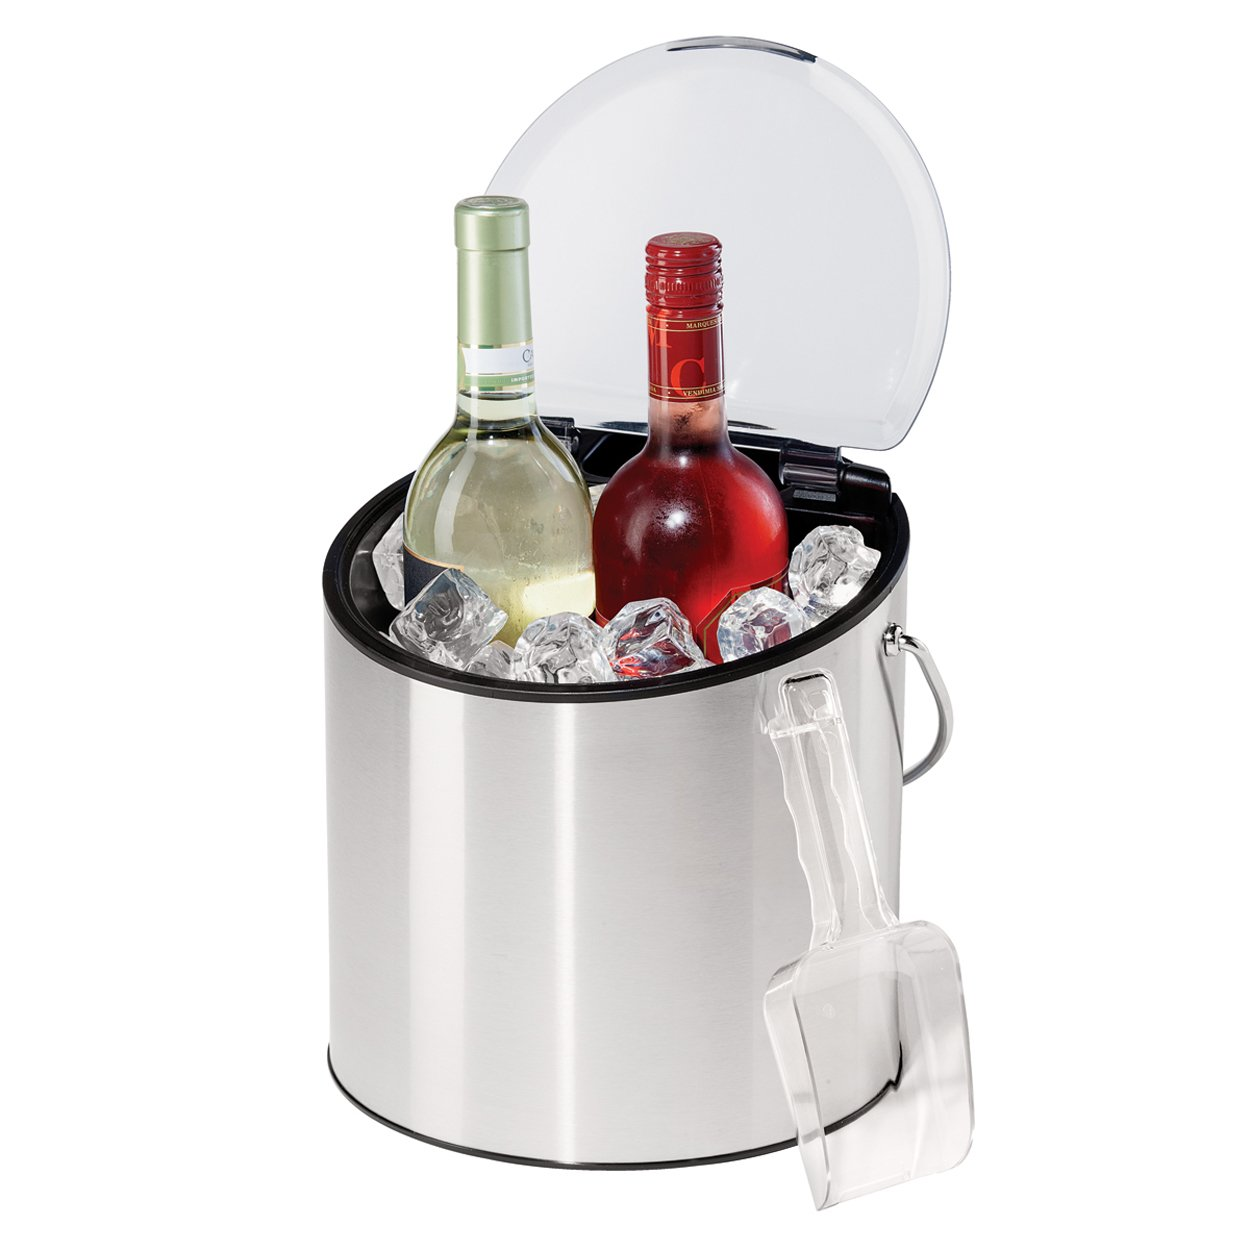 Oggi 7440 Stainless Steel Ice and Wine Bucket with Flip Top Lid and Ice Scoop Holds 2 Bottles